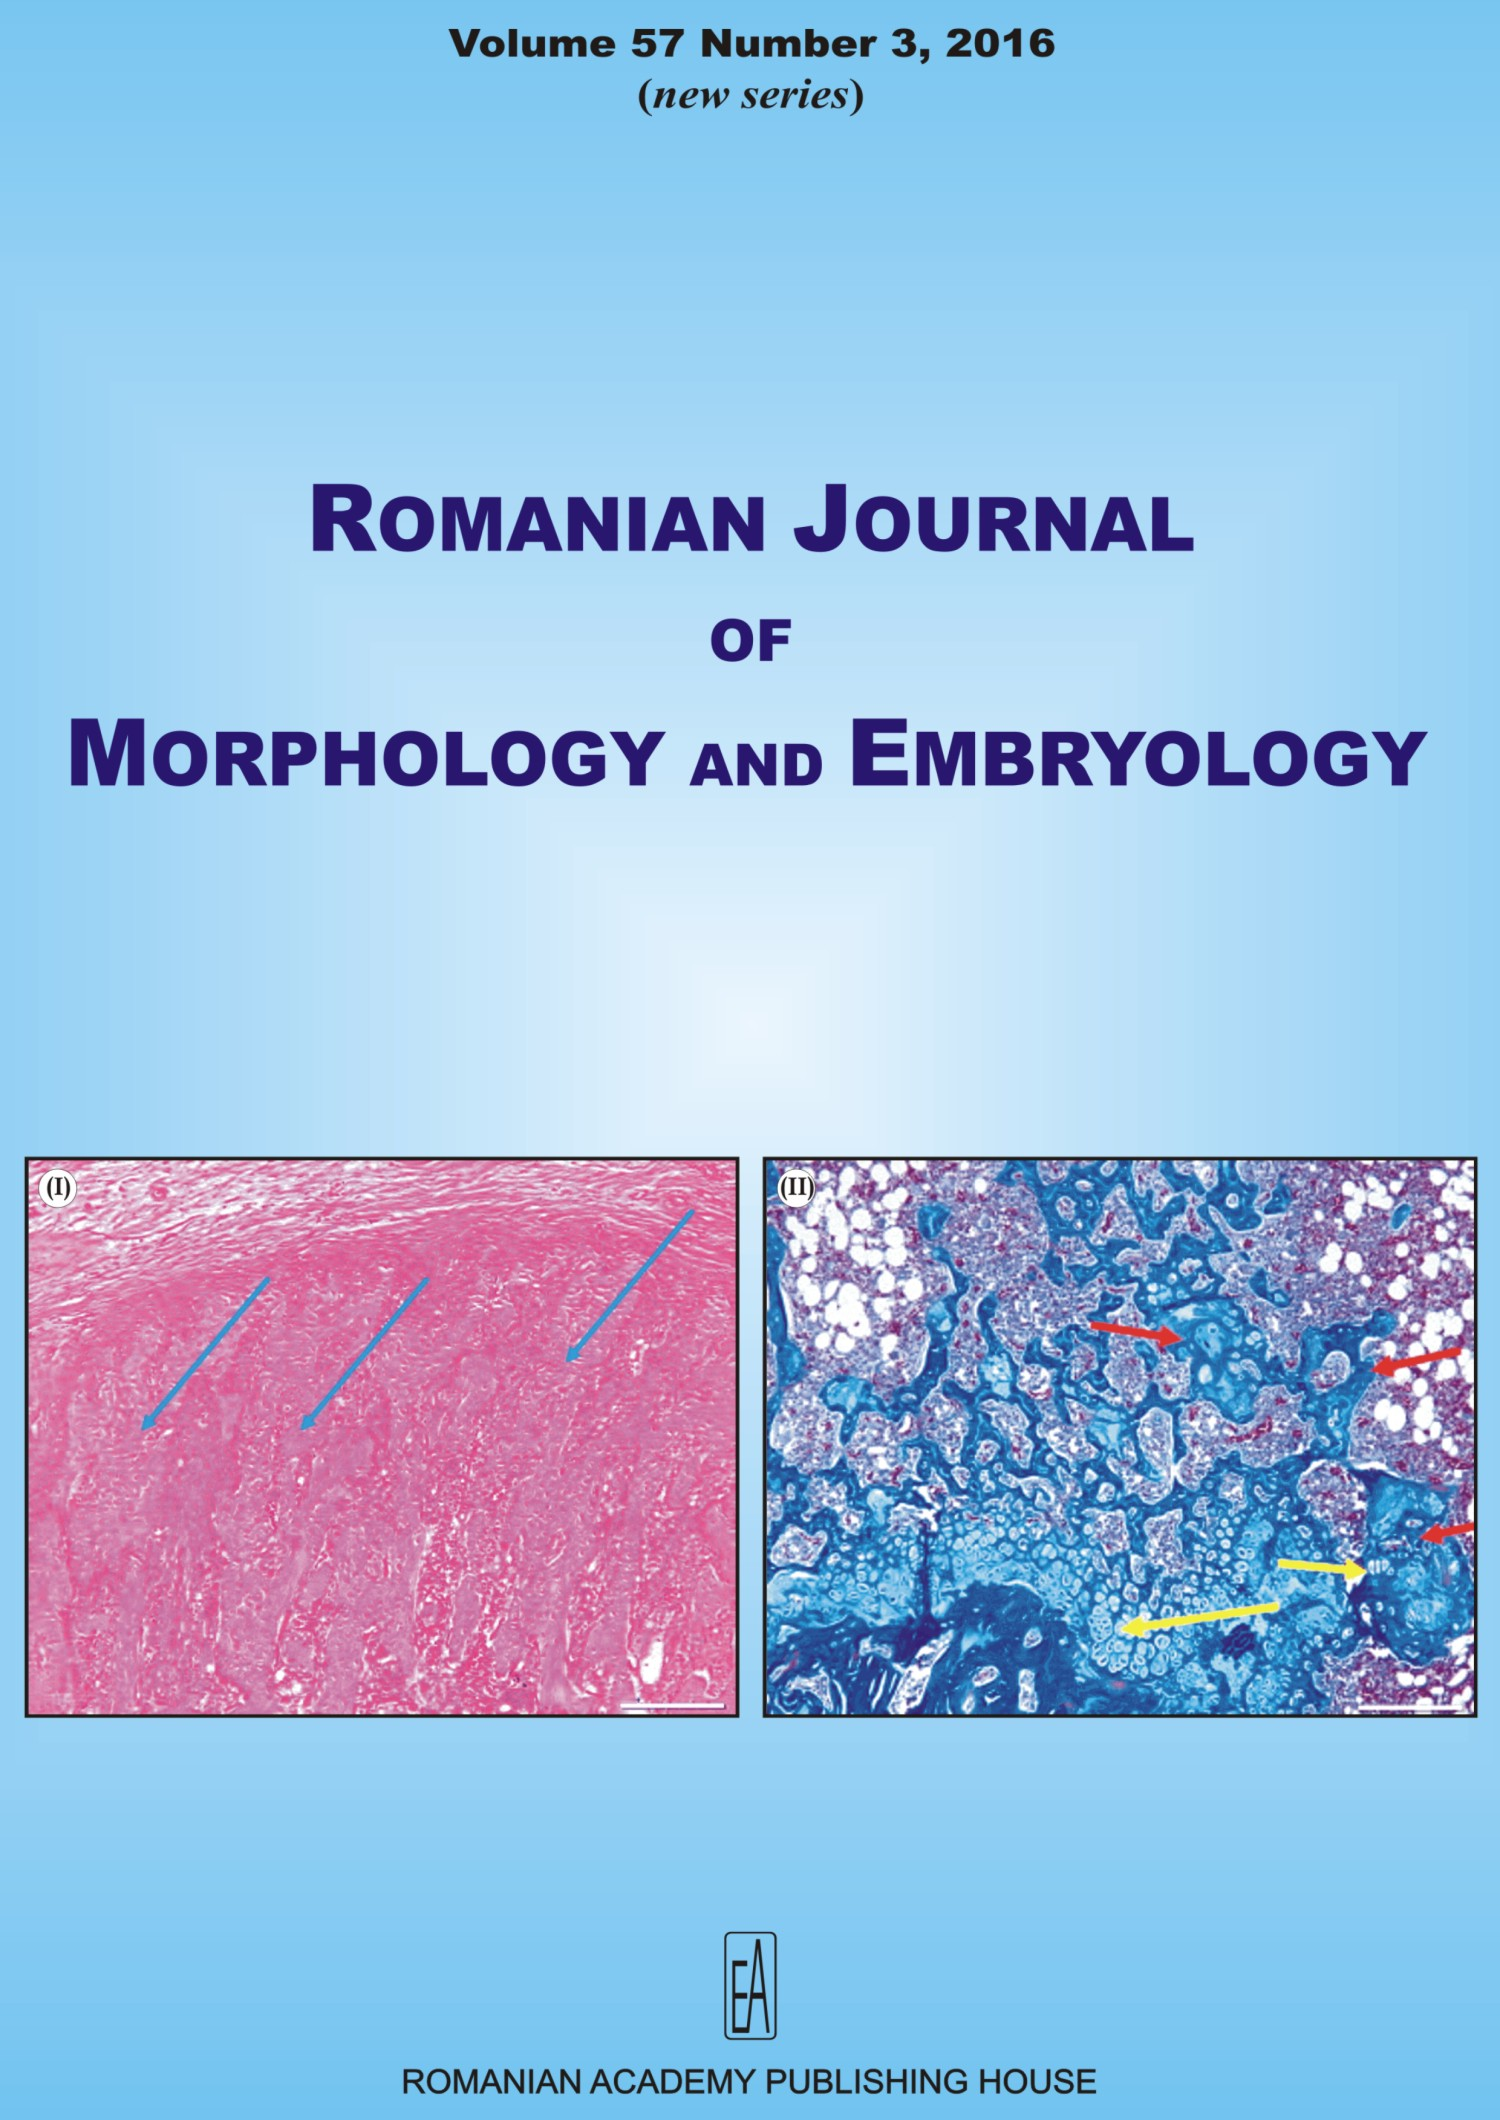 Romanian Journal of Morphology and Embryology, vol. 57 no. 3, 2016